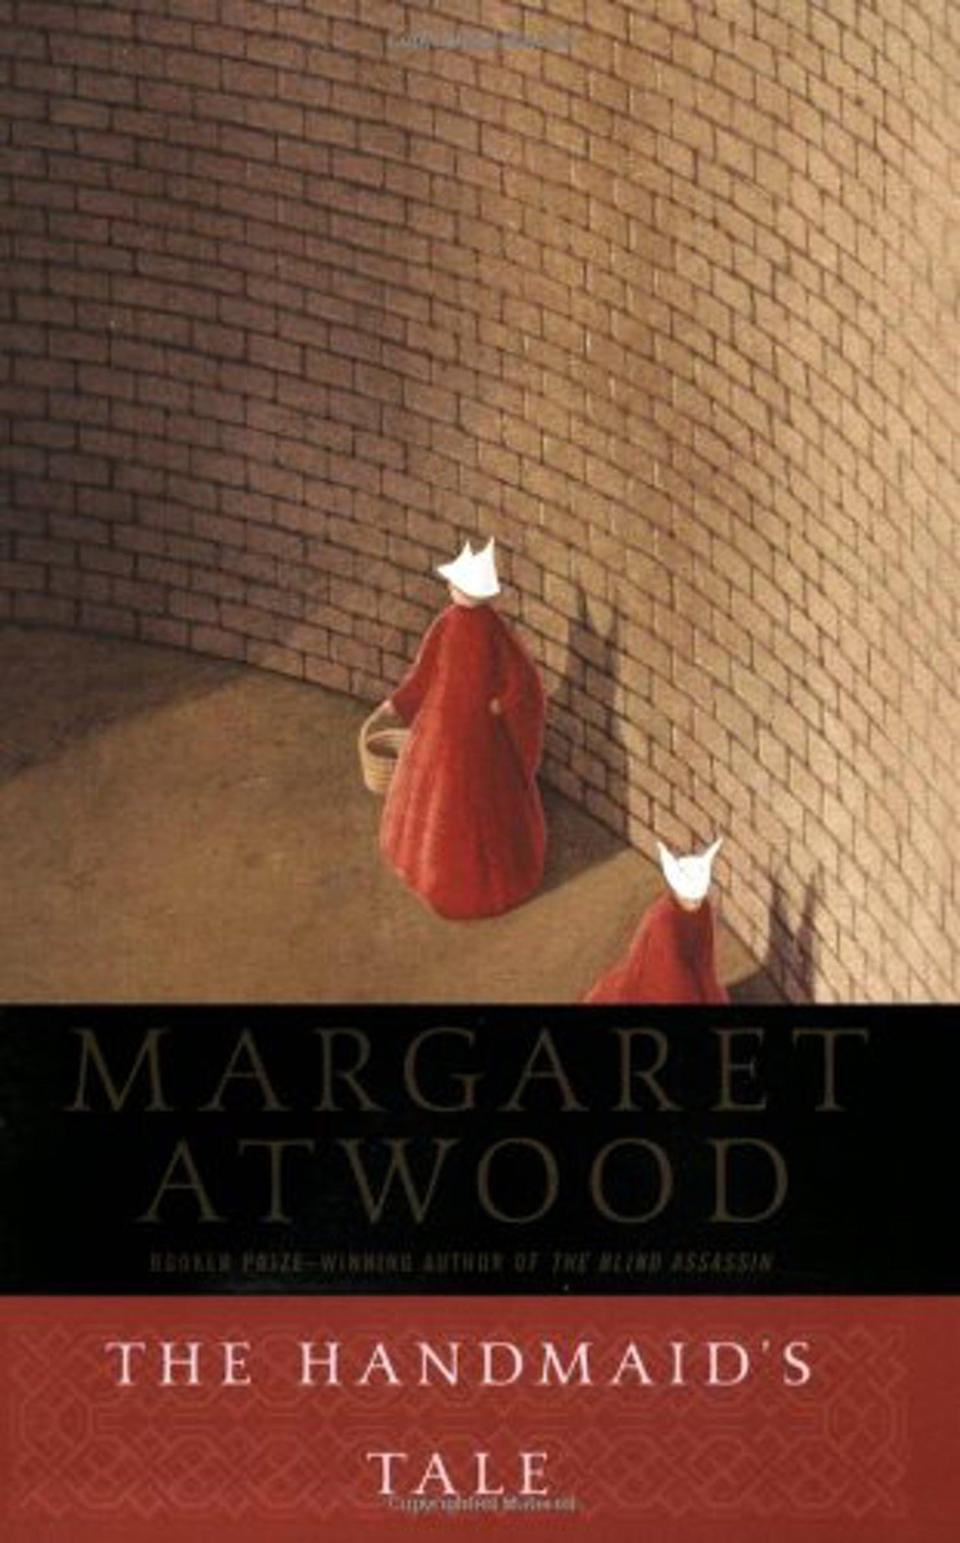 "<p><a href=""https://www.popsugar.com/buy?url=https%3A%2F%2Fwww.amazon.com%2FHandmaids-Tale-Margaret-Atwood%2Fdp%2F038549081X%2Fref%3Dtmm_pap_swatch_0%3F_encoding%3DUTF8%26qid%3D1488929643%26sr%3D1-1&p_name=%3Cb%3EThe%20Handmaid%27s%20Tale%3C%2Fb%3E%20by%20Margaret%20Atwood&retailer=amazon.com&evar1=tres%3Auk&evar9=43250262&evar98=https%3A%2F%2Fwww.popsugar.com%2Flove%2Fphoto-gallery%2F43250262%2Fimage%2F43252236%2FHandmaid-Tale-Margaret-Atwood&list1=books%2Cwomen%2Creading%2Cinternational%20womens%20day%2Cwomens%20history%20month&prop13=api&pdata=1"" class=""link rapid-noclick-resp"" rel=""nofollow noopener"" target=""_blank"" data-ylk=""slk:The Handmaid's Tale by Margaret Atwood""><b>The Handmaid's Tale</b> by Margaret Atwood</a></p>"